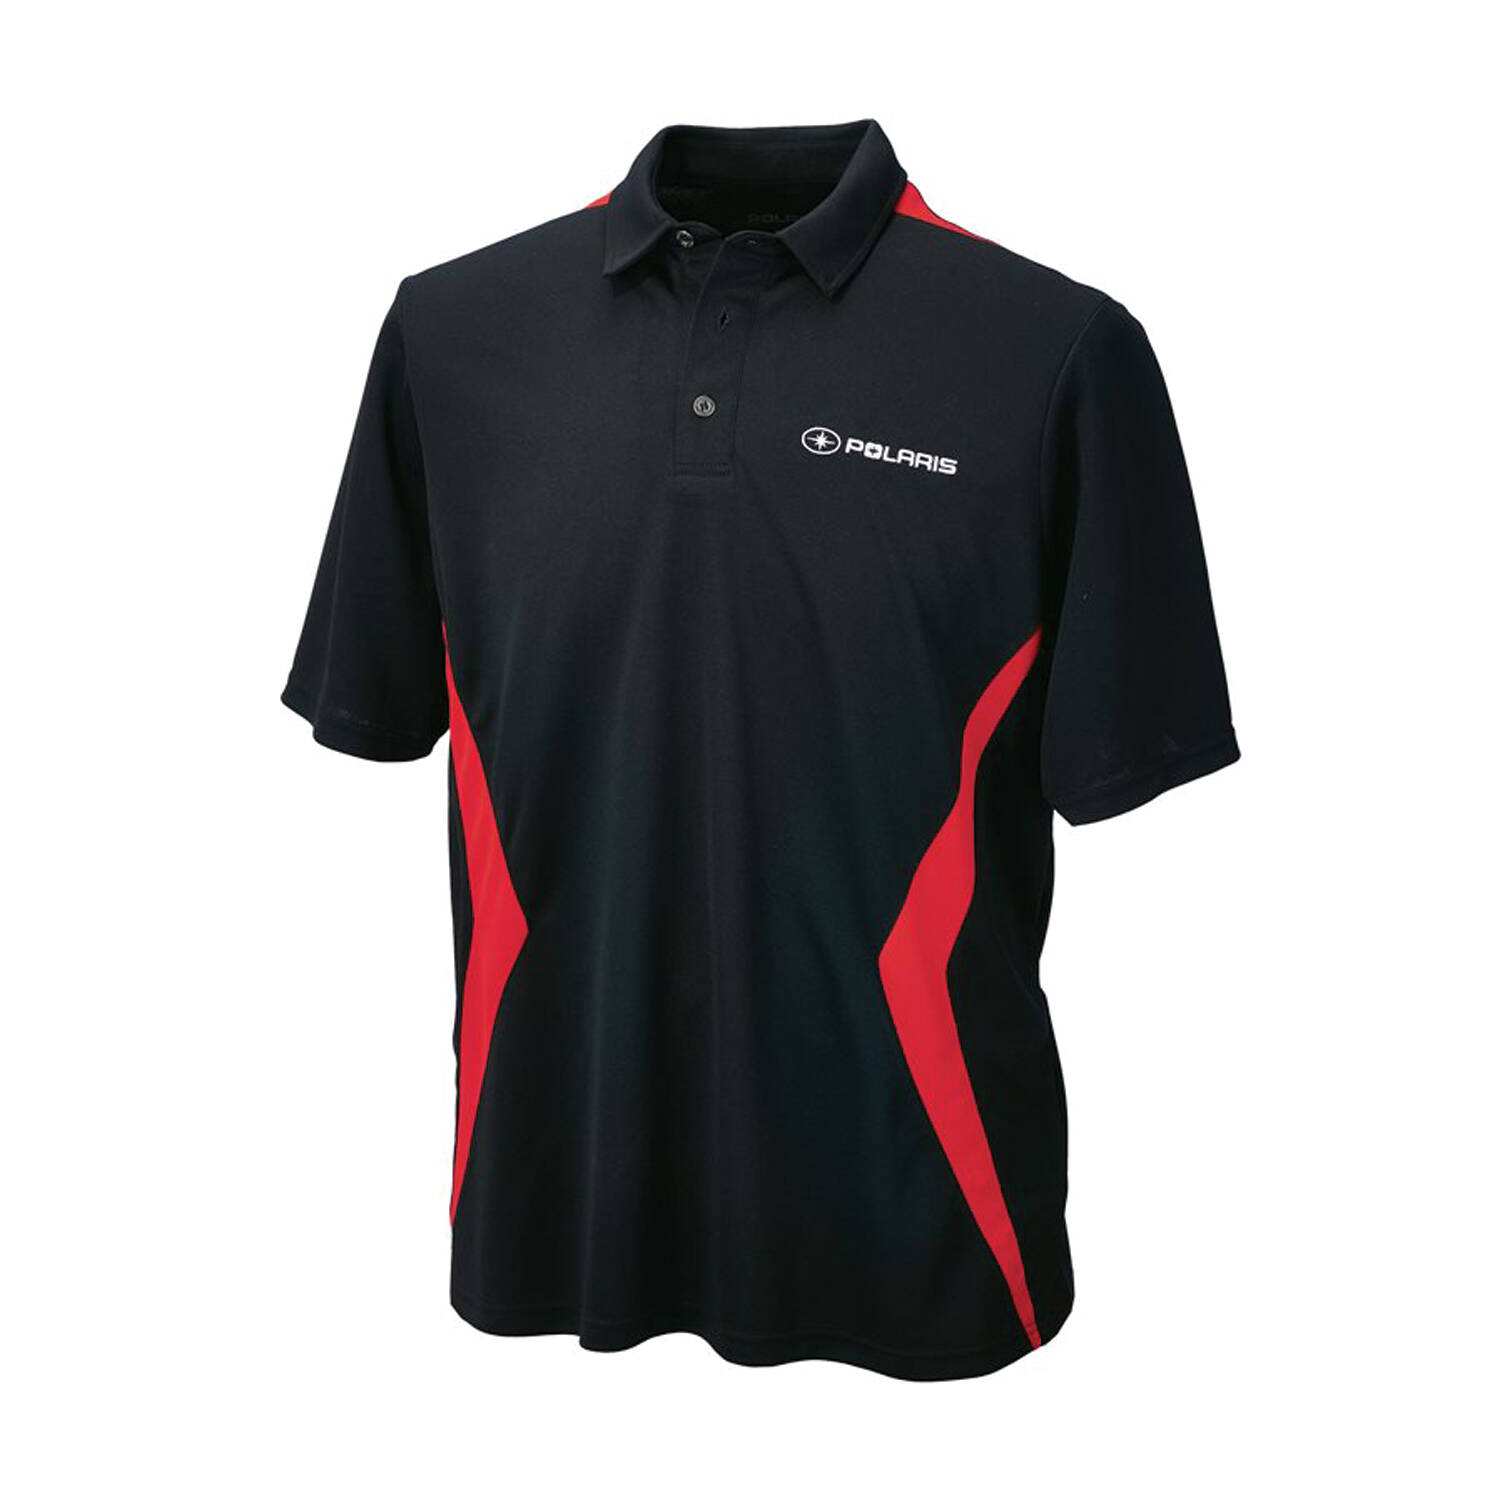 Men's Short-Sleeve Tech Polo with Logo, Black/Red